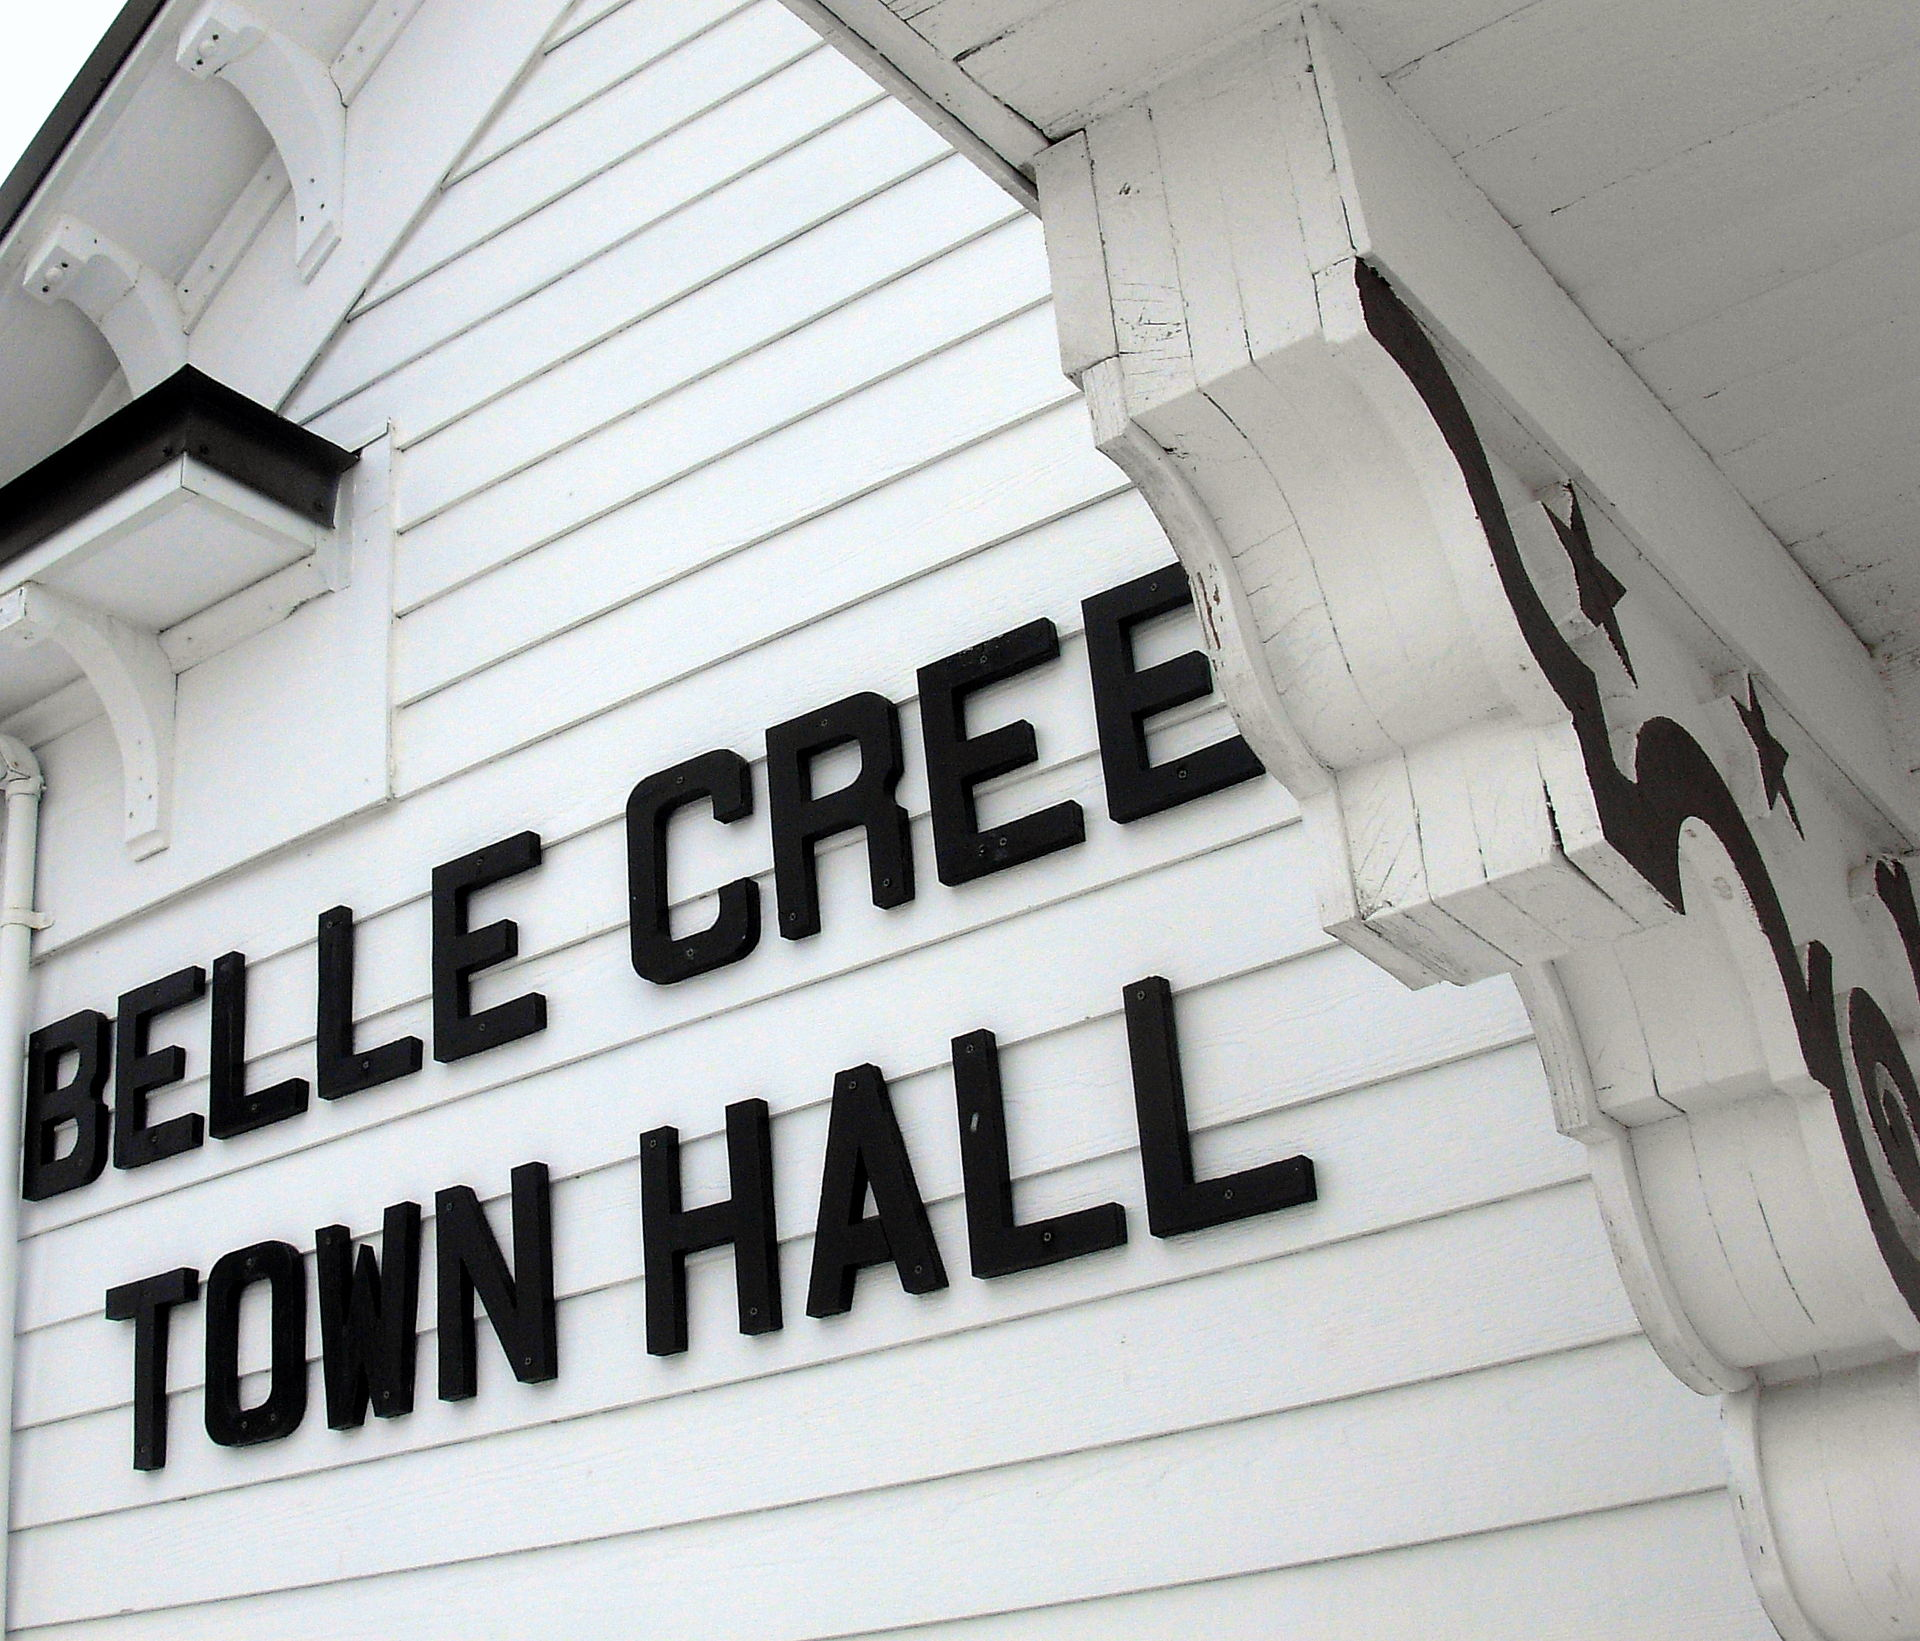 Belle Creek Township Goodhue County Minnesota Wikipedia